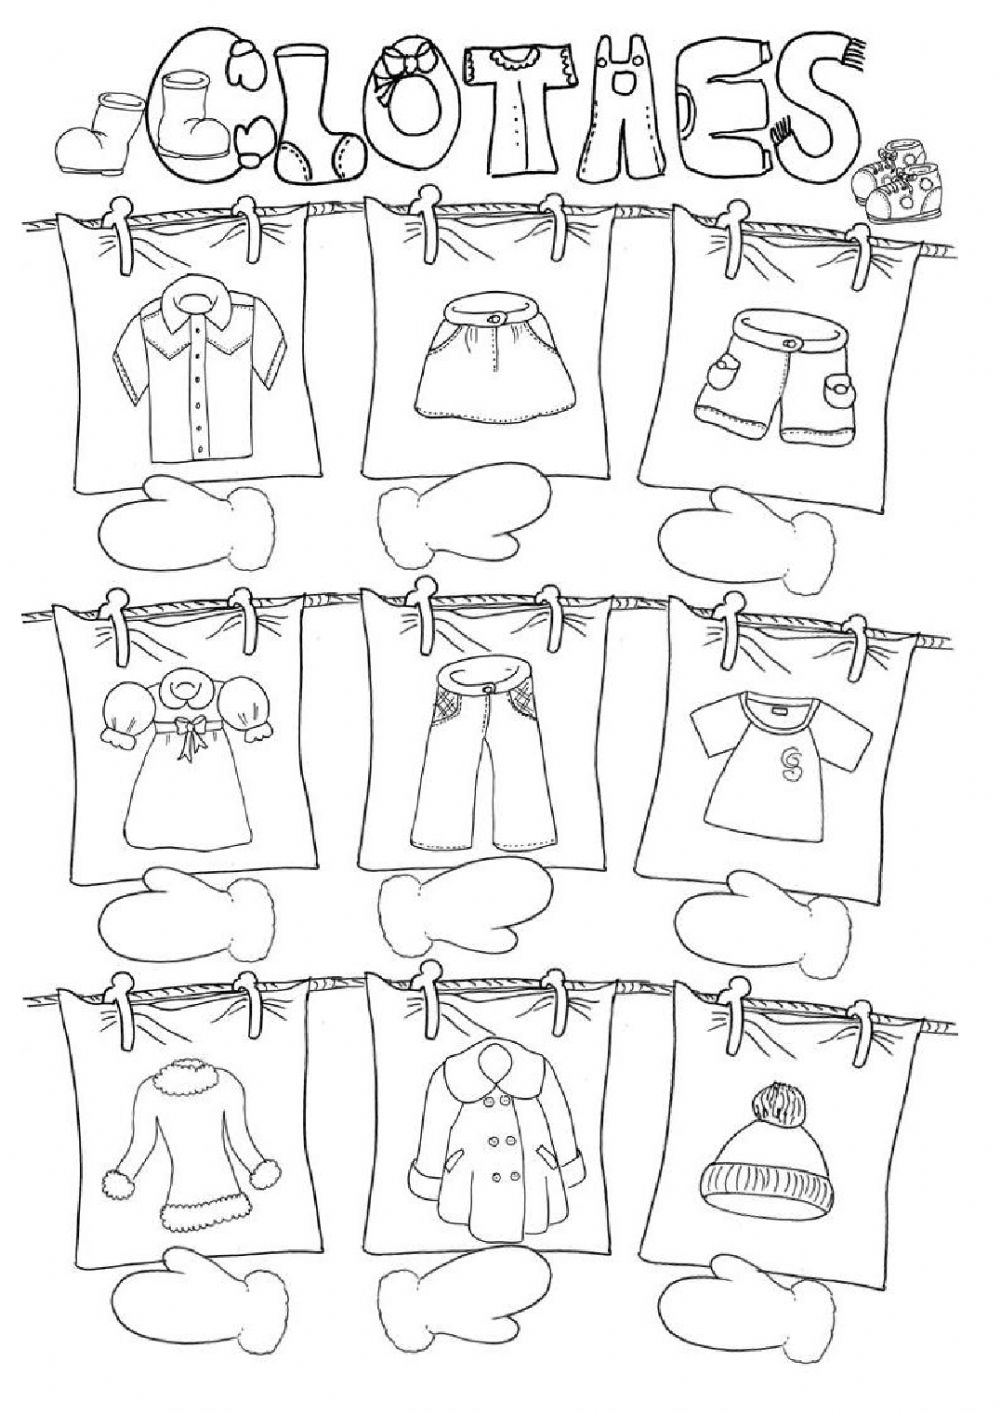 Clothes: The clothes online worksheet